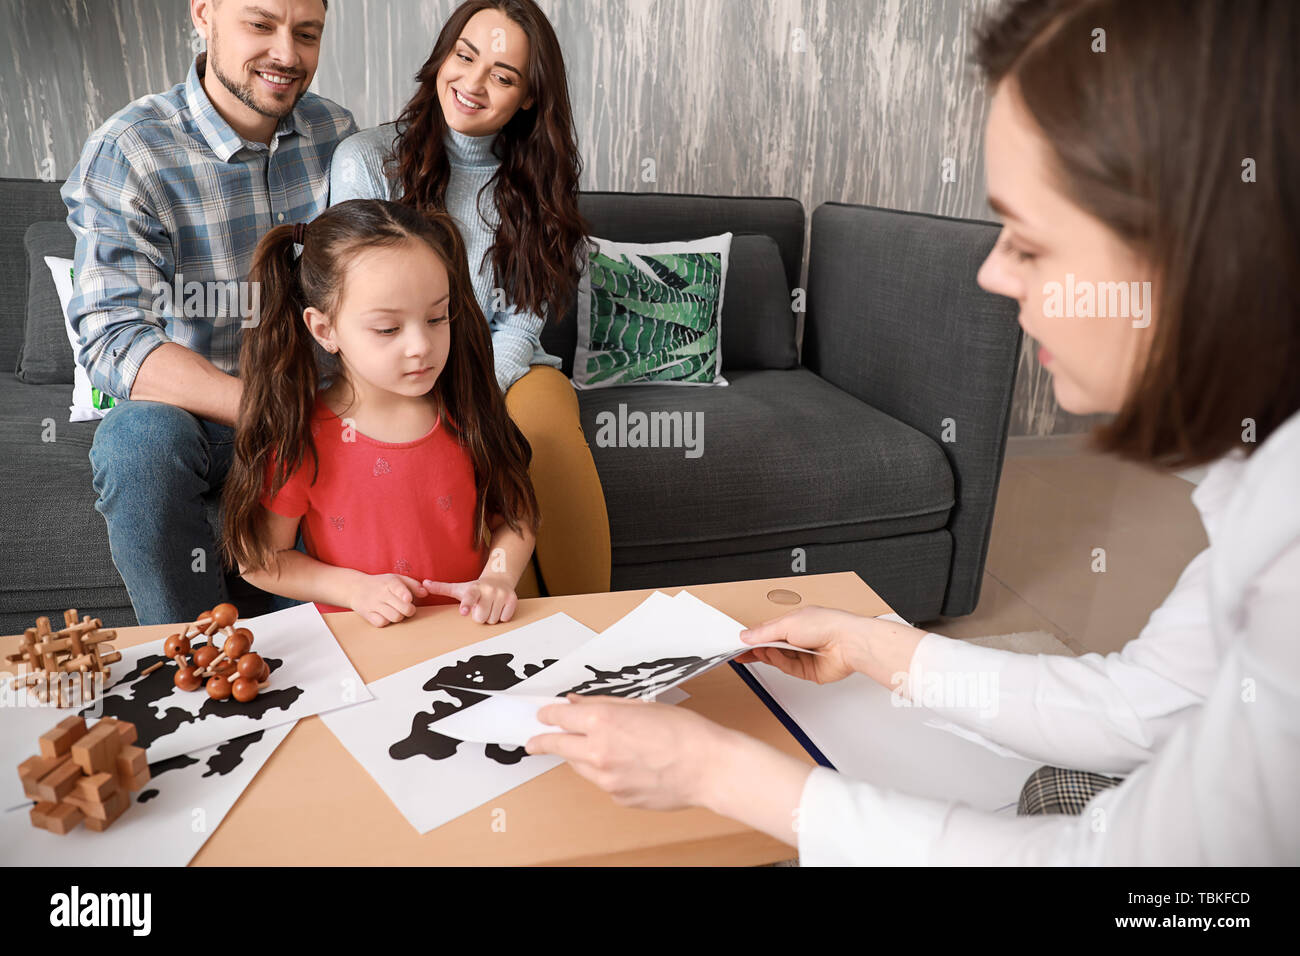 Female psychologist working with family in office - Stock Image